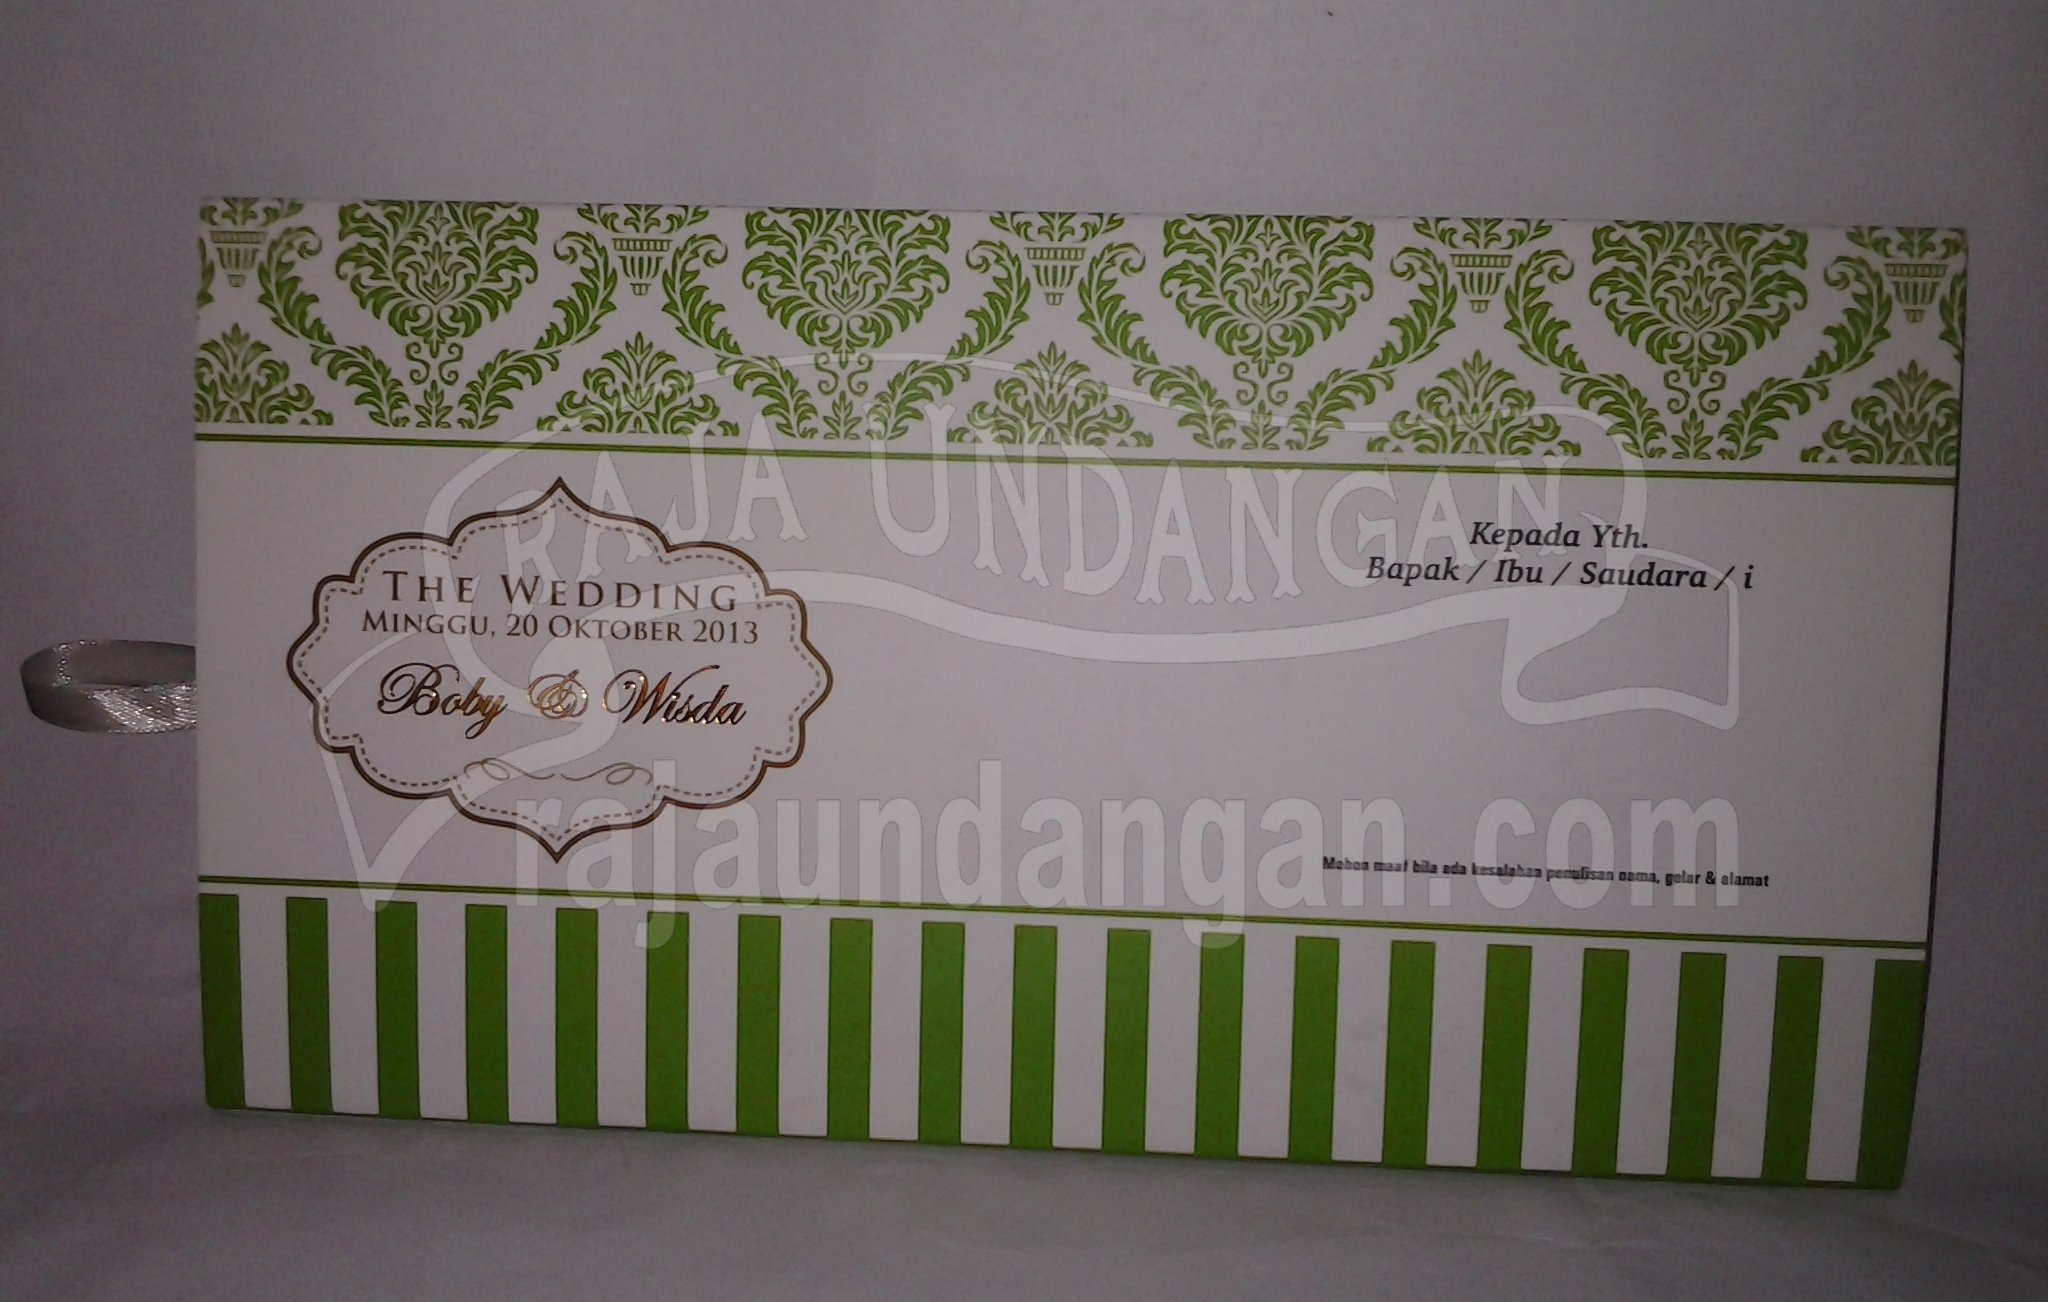 20131009 104118 - Pesan Wedding Invitations Online di Dupak